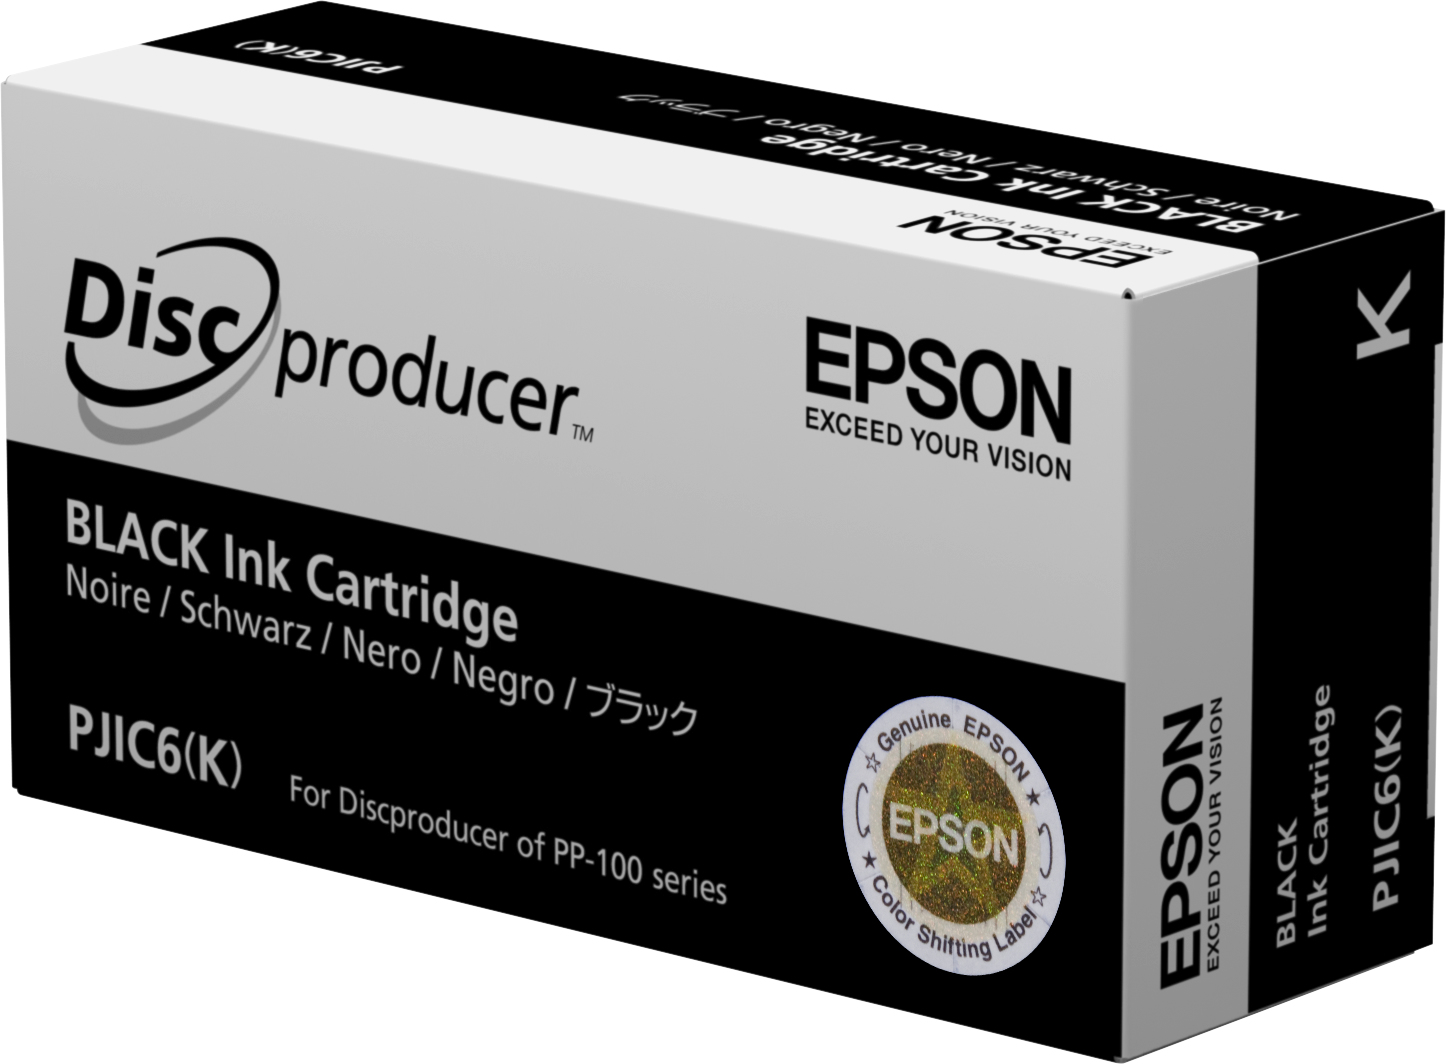 Epson - Black - Original - Ink Cartridge - For Discproducer PP-100, PP-100AP, PP-100II, PP-100N, PP-100NS, PP-50 C13S020452 - C2000